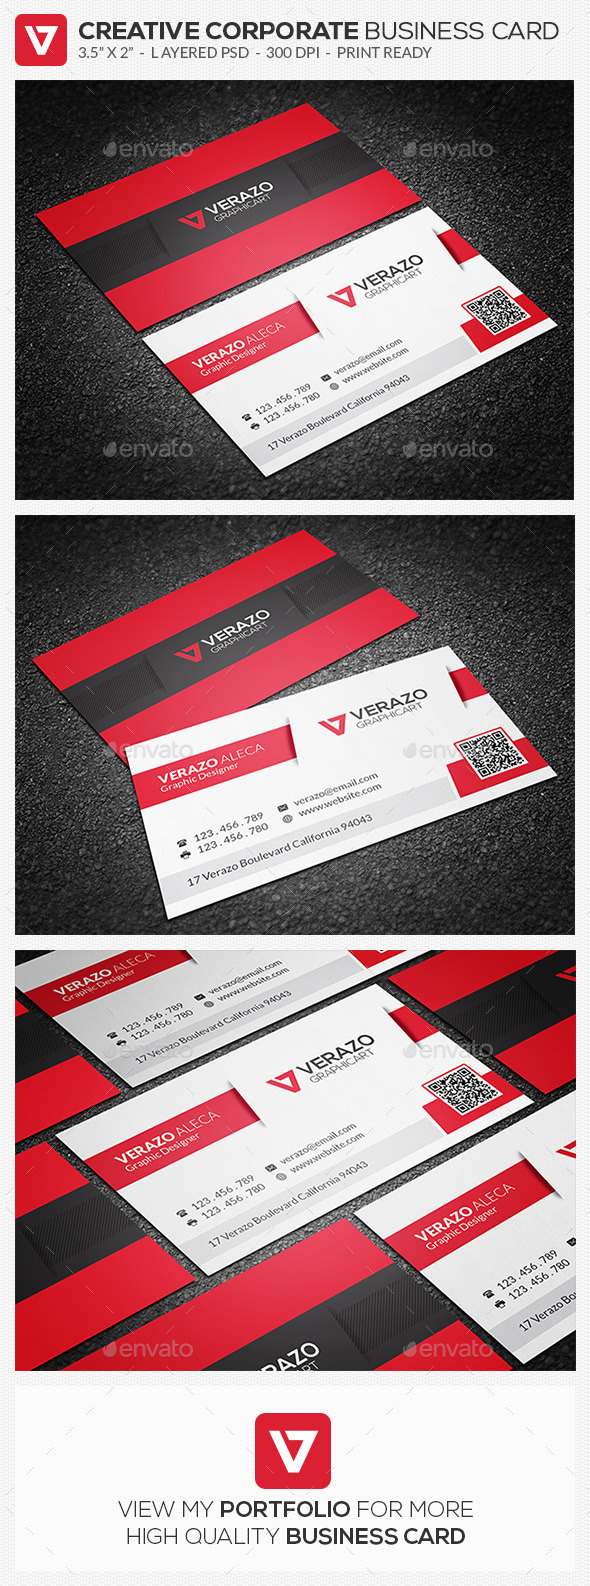 Creative Corporate Business Card 71 - Corporate Business Cards